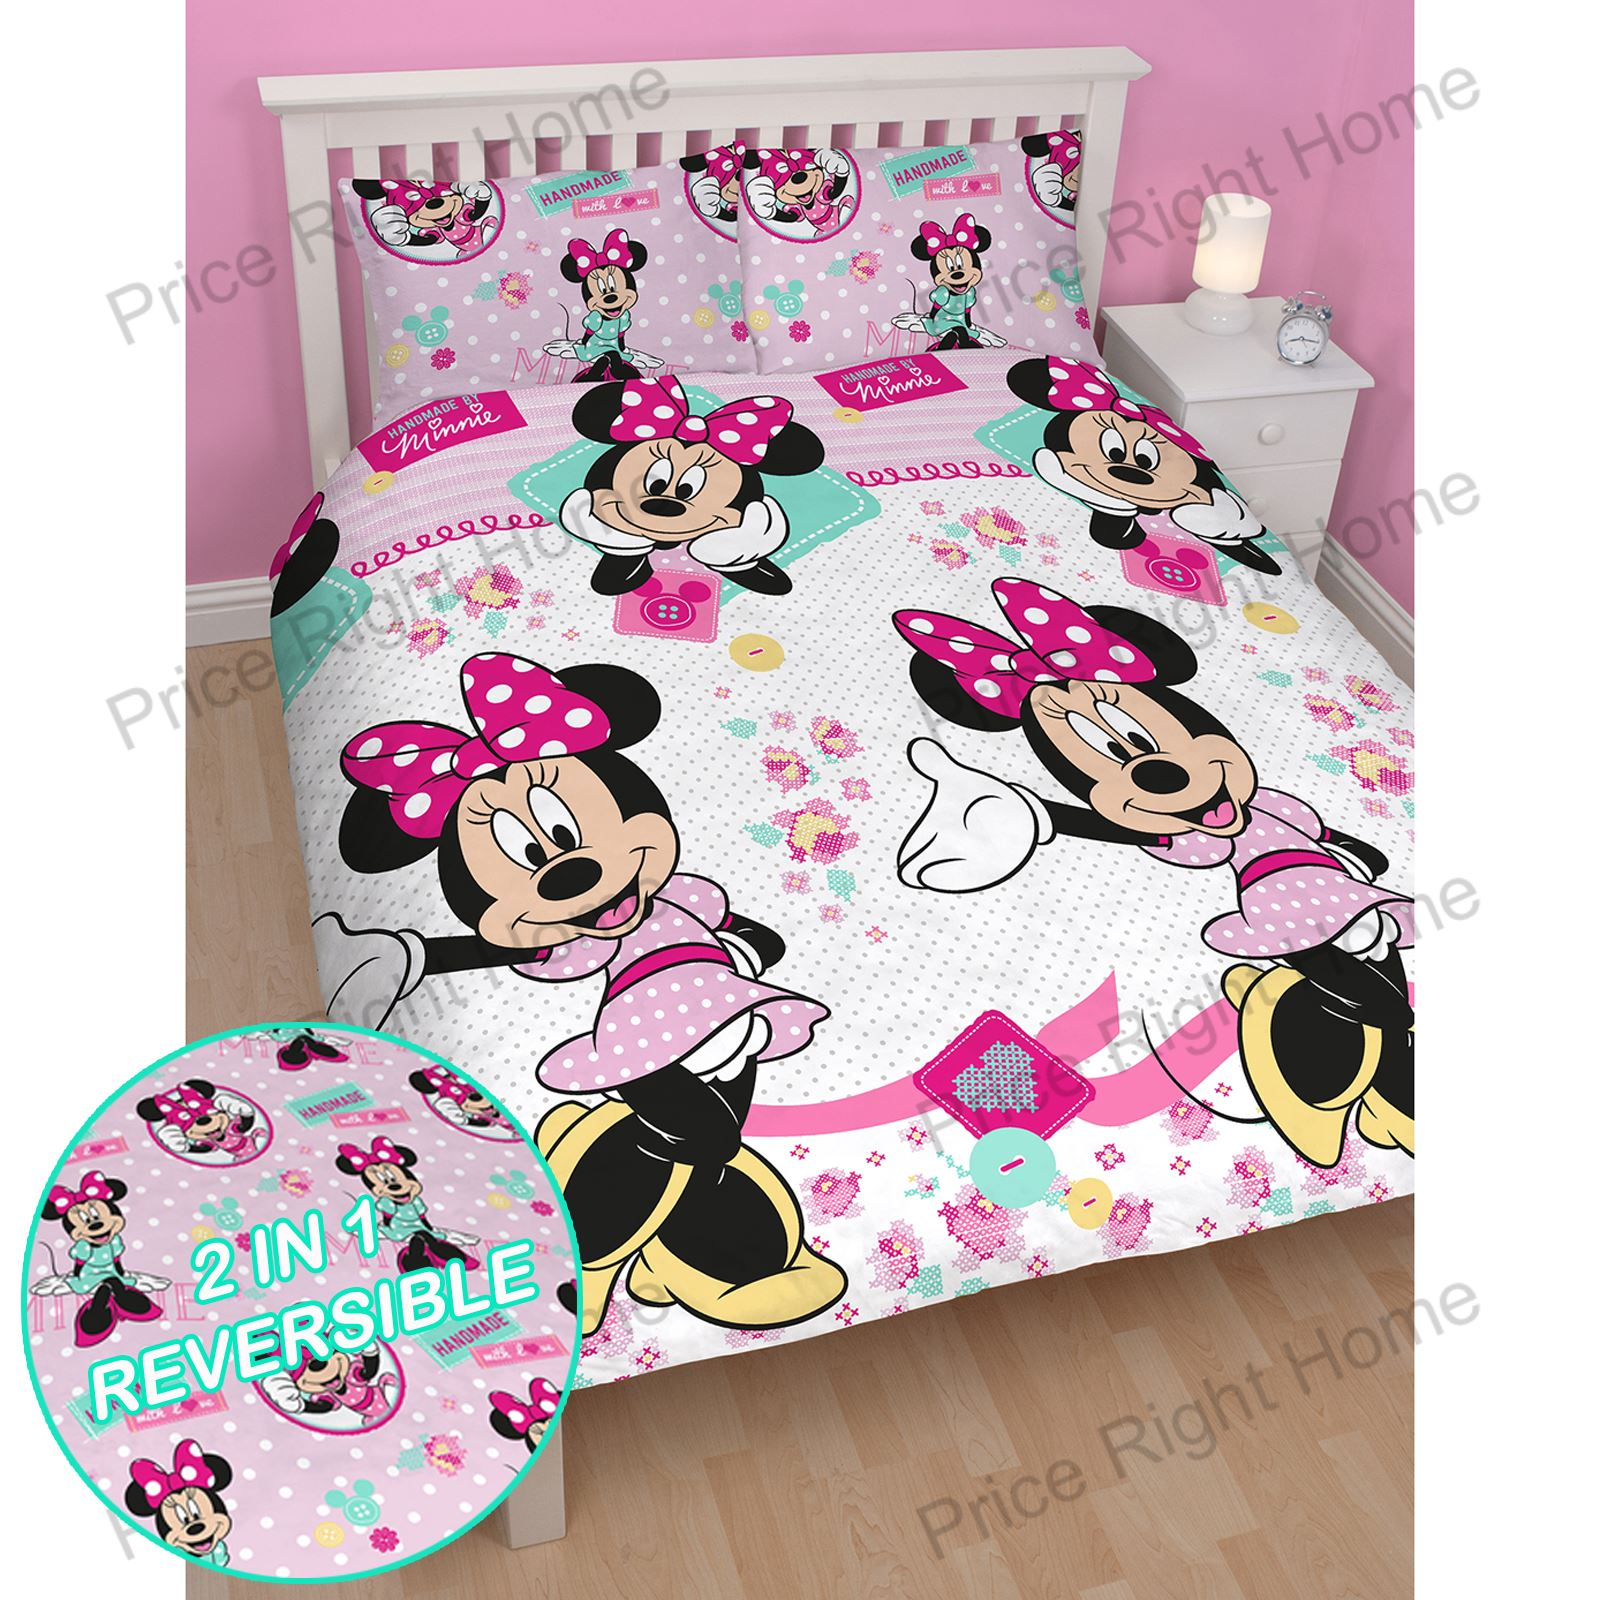 Minnie Mouse Bedroom Curtains Bedroom Cabinet Design For Small Room Yellow Wall Bedroom Design Accent Wall Ideas For Small Bedroom